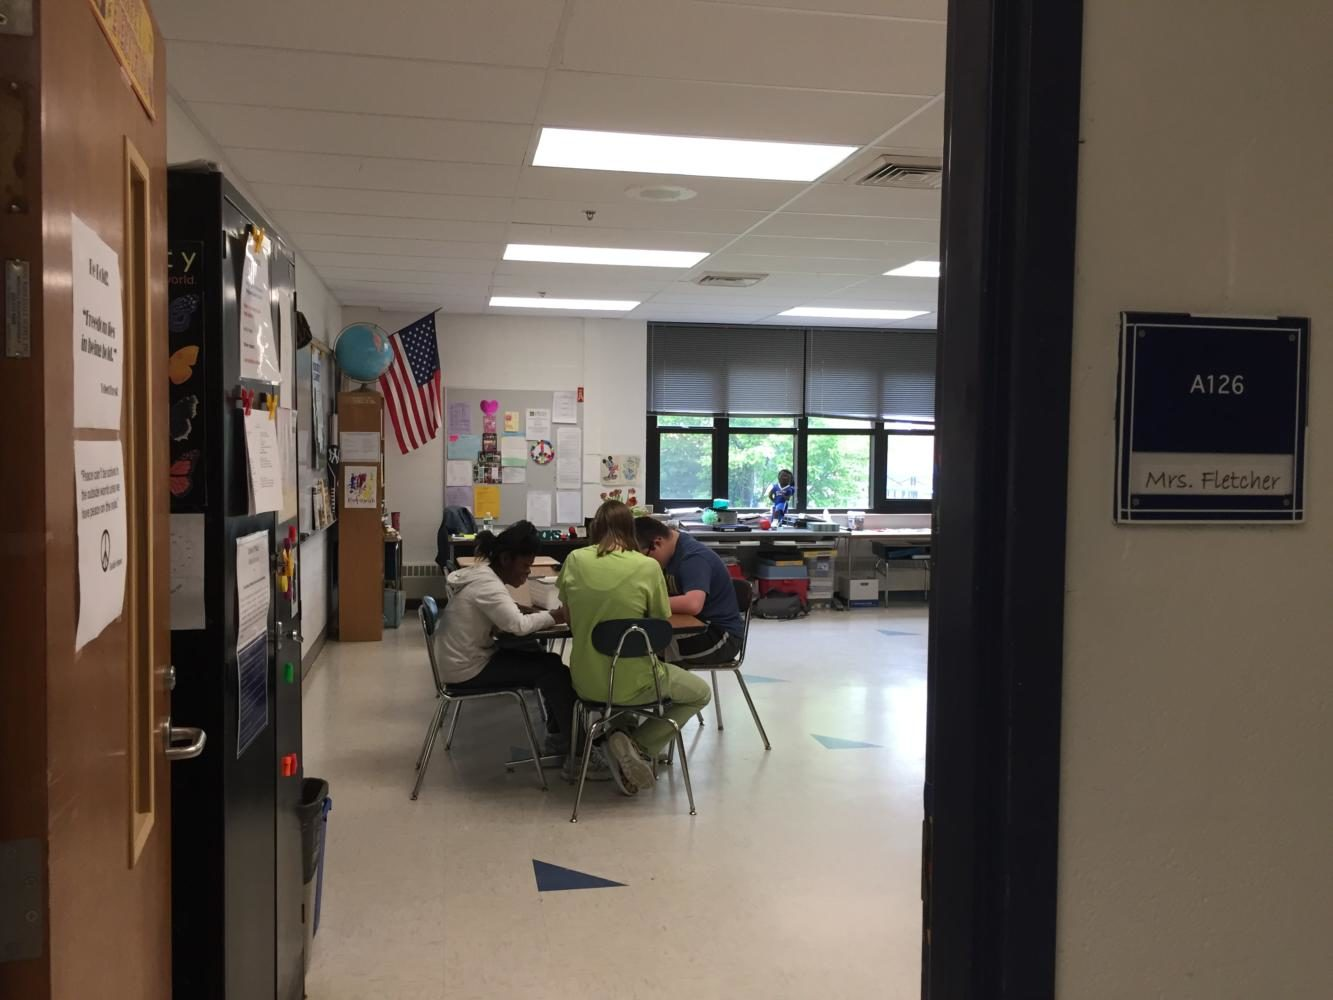 Senior+Mariel+Hayes%2C+center%2C+talks+with+students+in+the+STARS+room+on+a+recent+June+day.